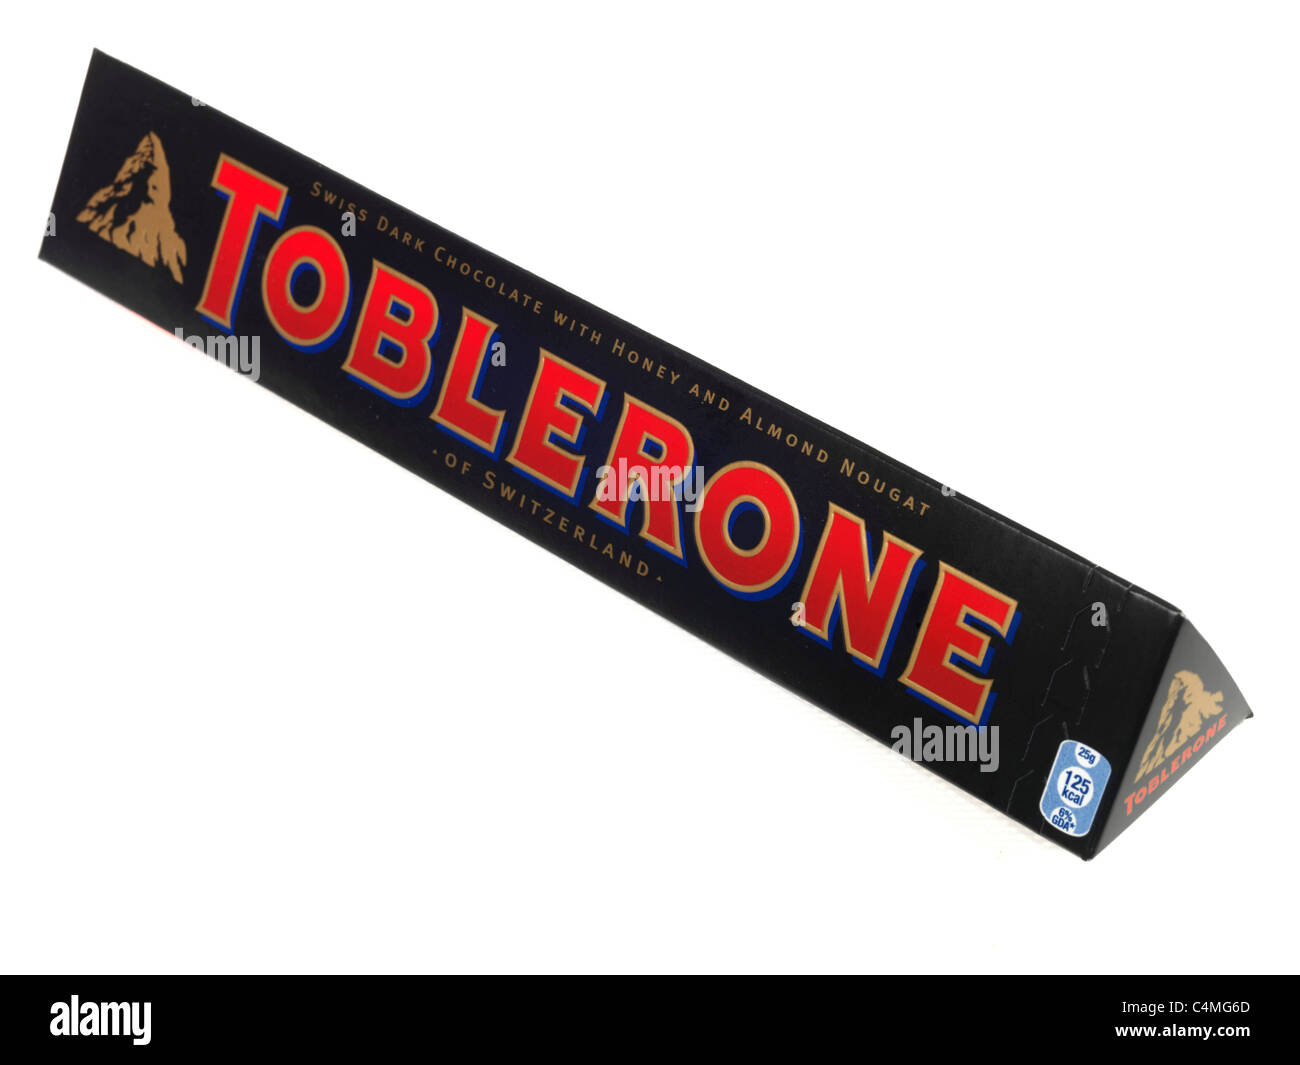 Toblerone Bar Stock Photos Toblerone Bar Stock Images Alamy